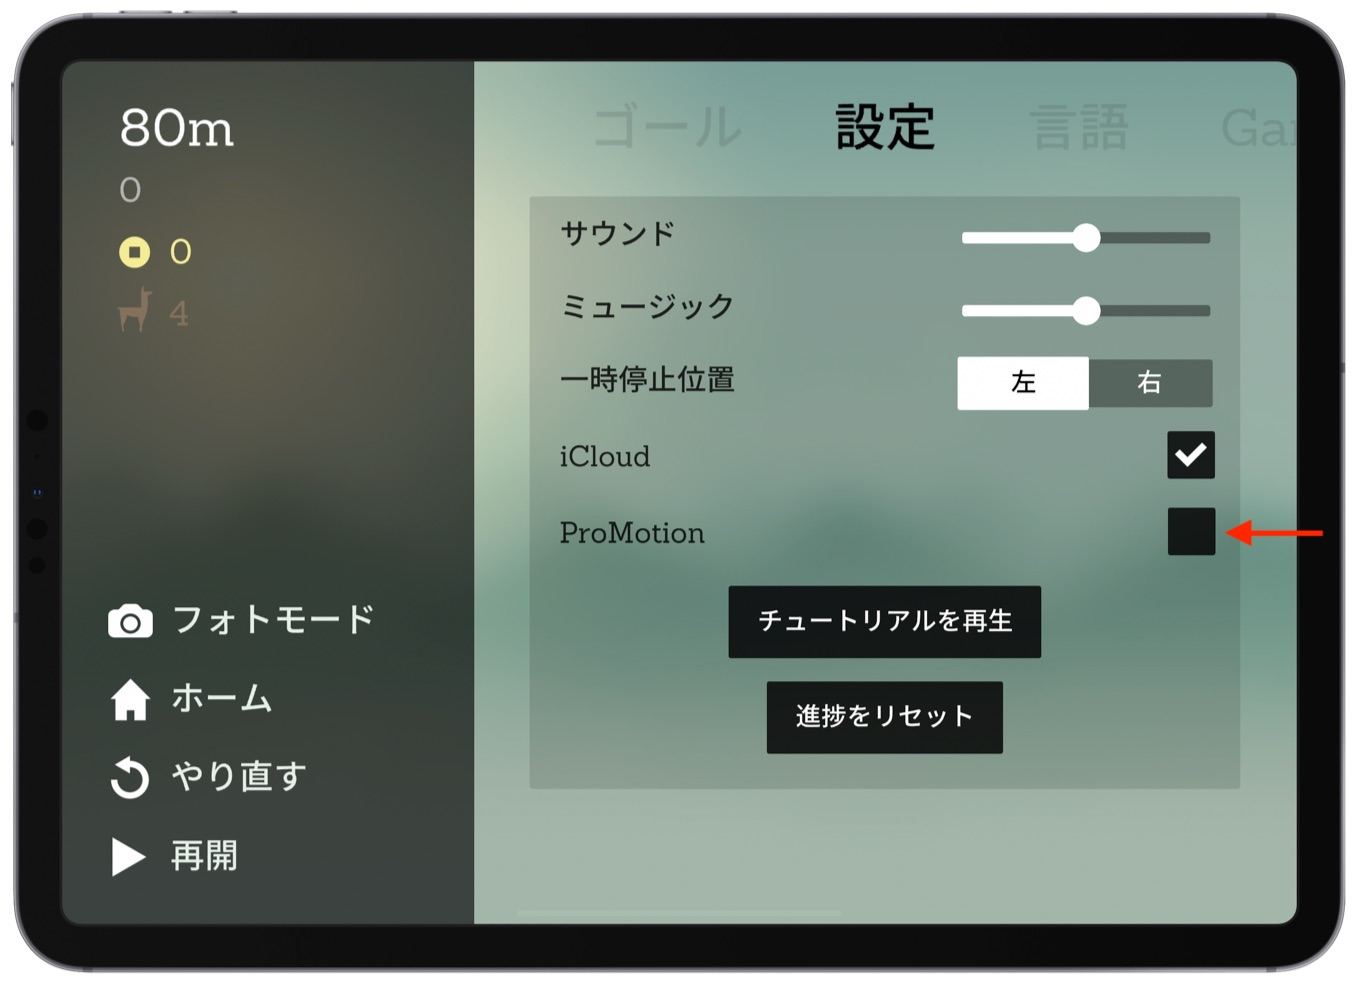 ProMotion technologyに対応したAlto's Adventure